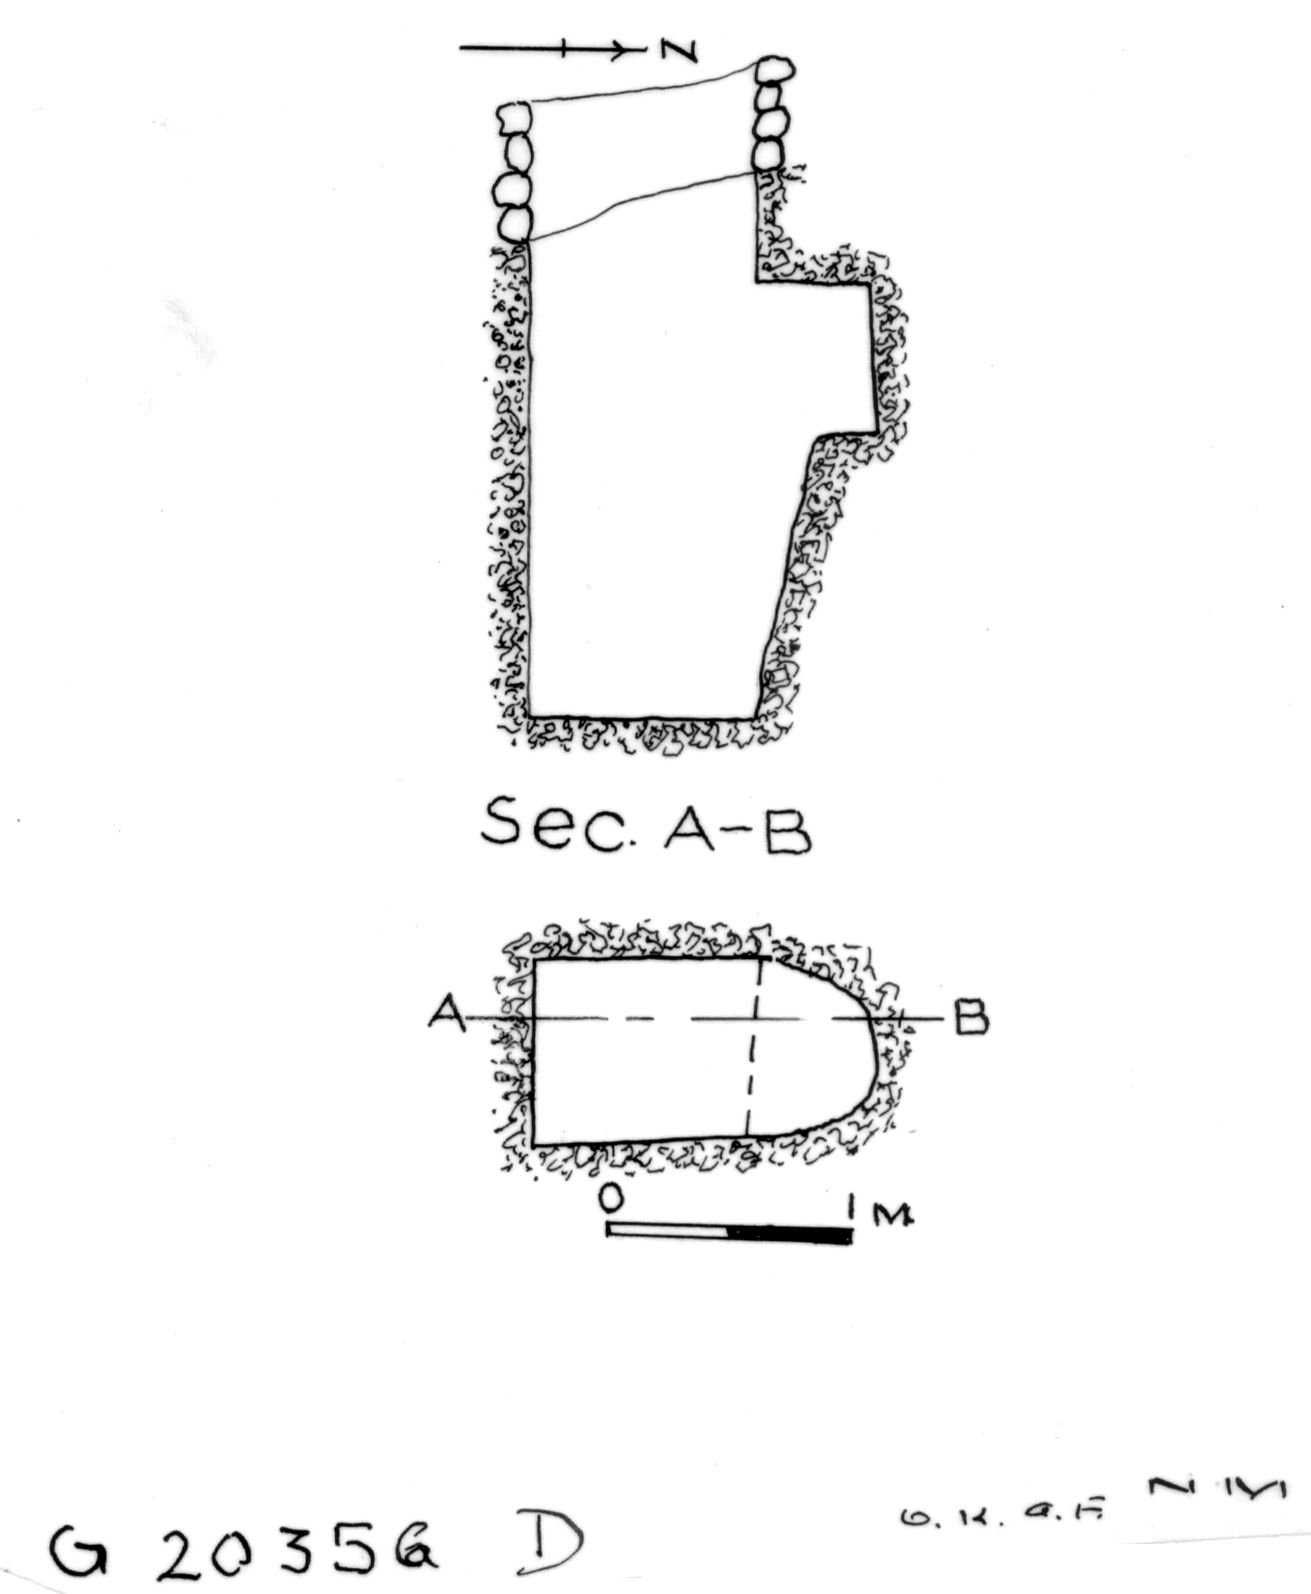 Maps and plans: G 2035b, Shaft D